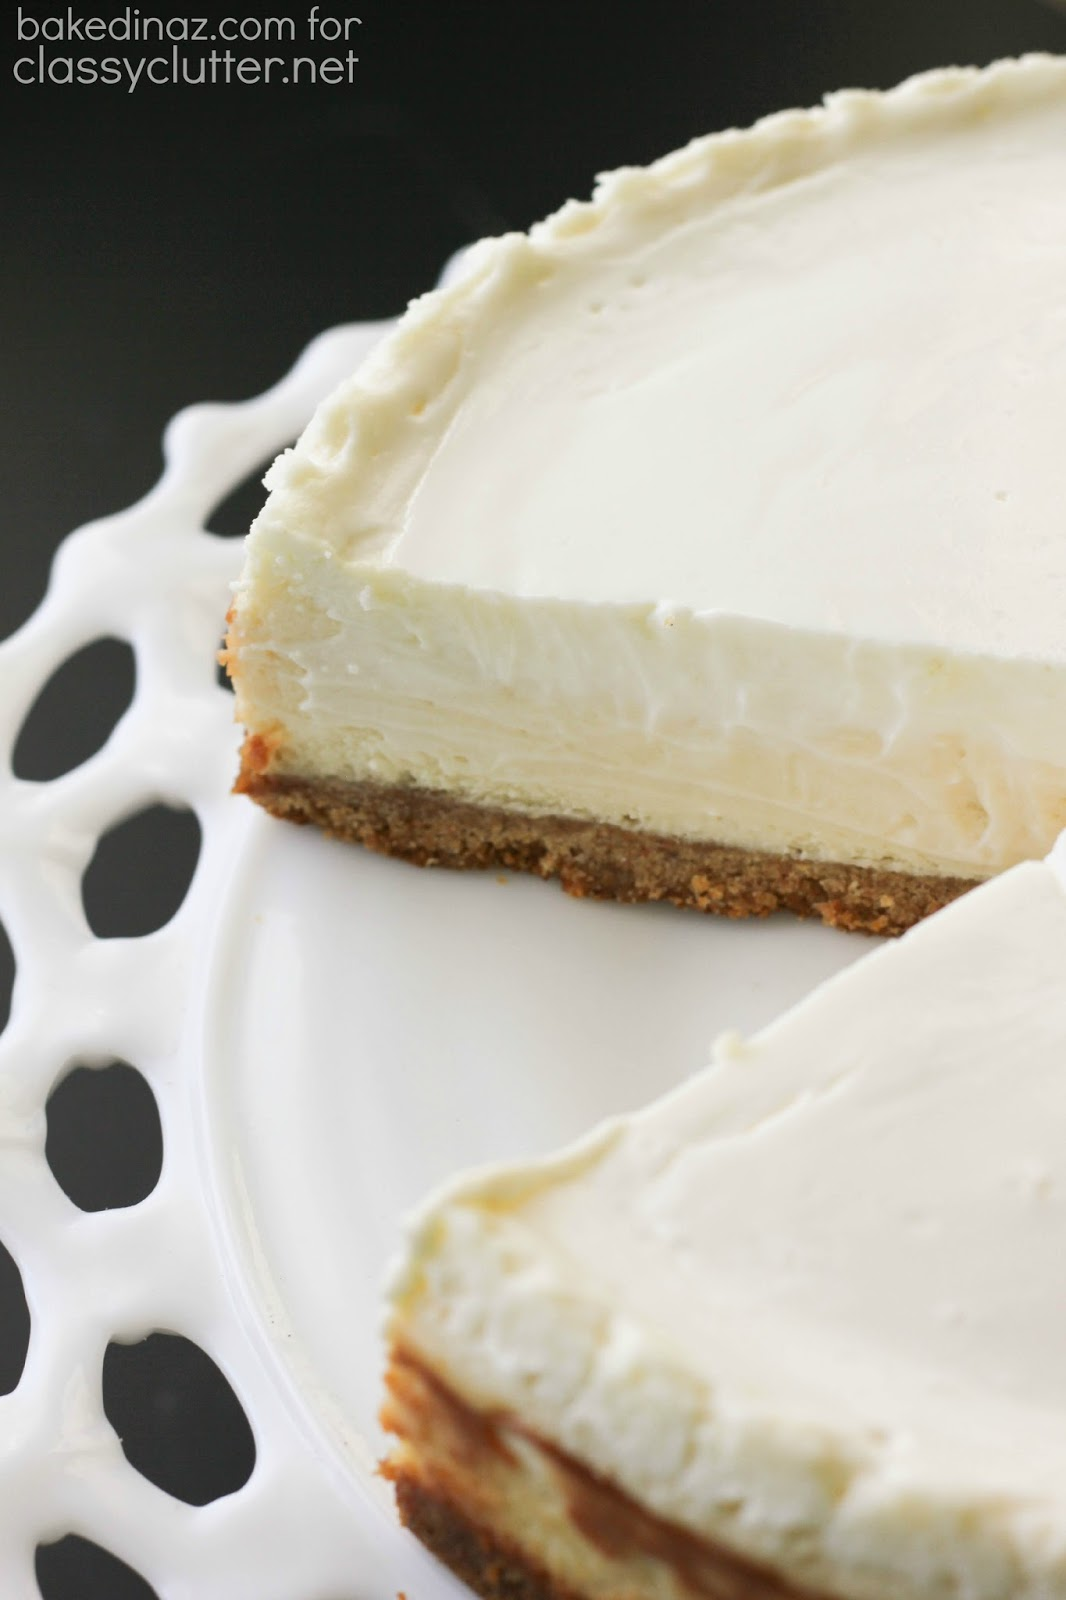 Classic Cheesecake With Sour Cream Topping Classy Clutter